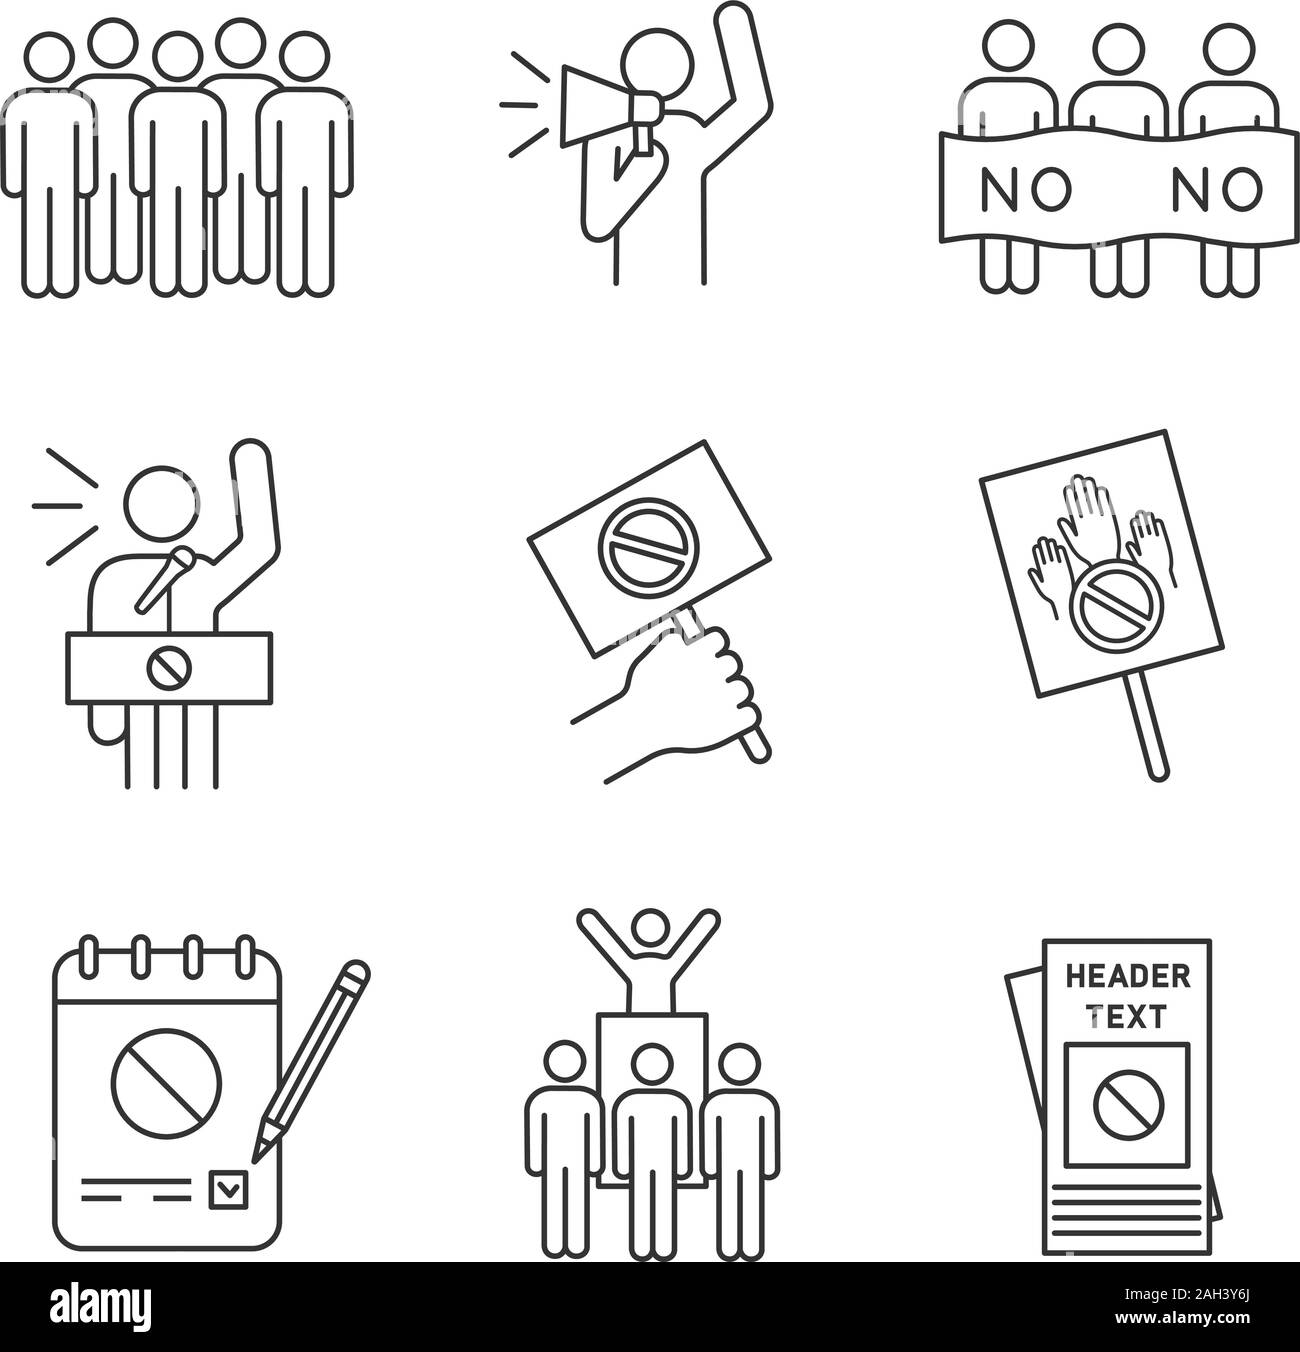 Protest action linear icons set. Meeting, protester, picket, speech, banner, protest placard, petition, leader, leaflet. Thin line symbols. Isolated v Stock Vector